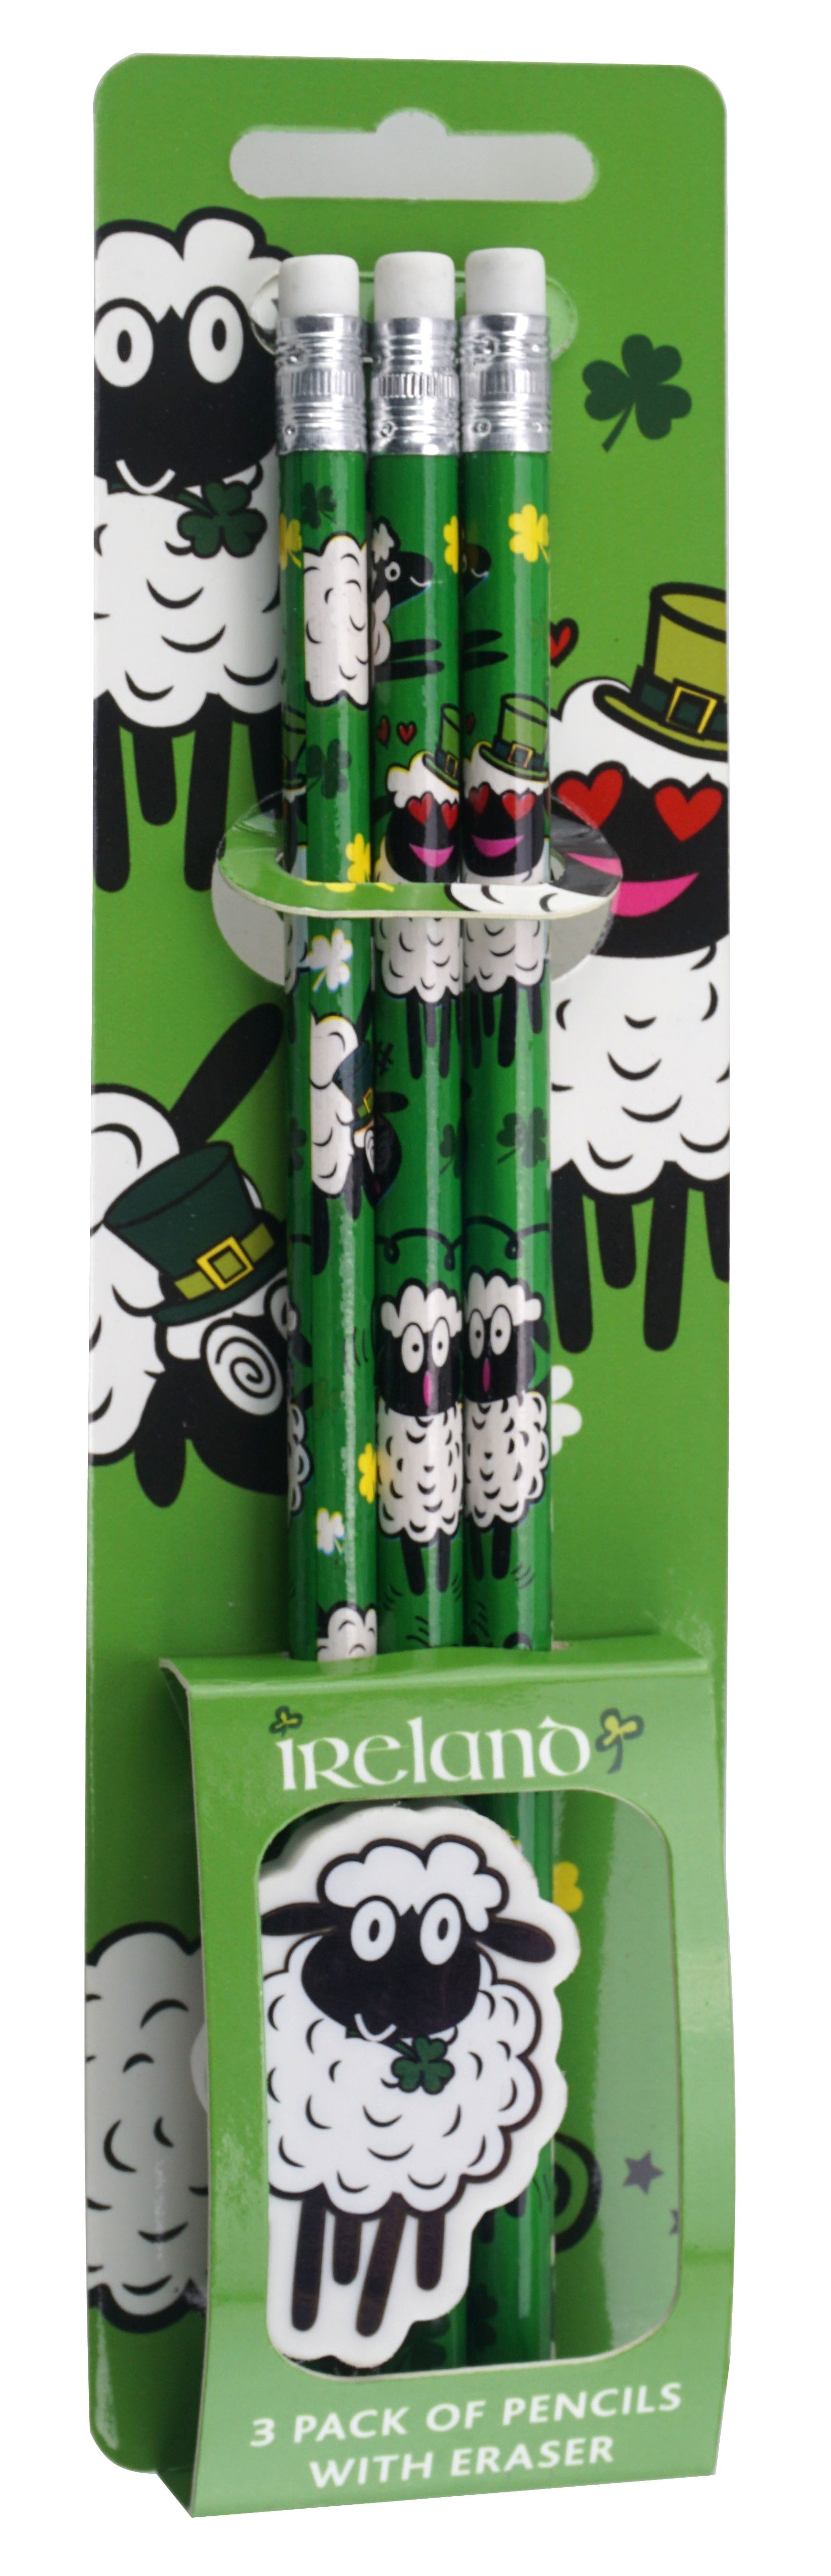 Set of 3 Pencils with Eraser, Sheep design